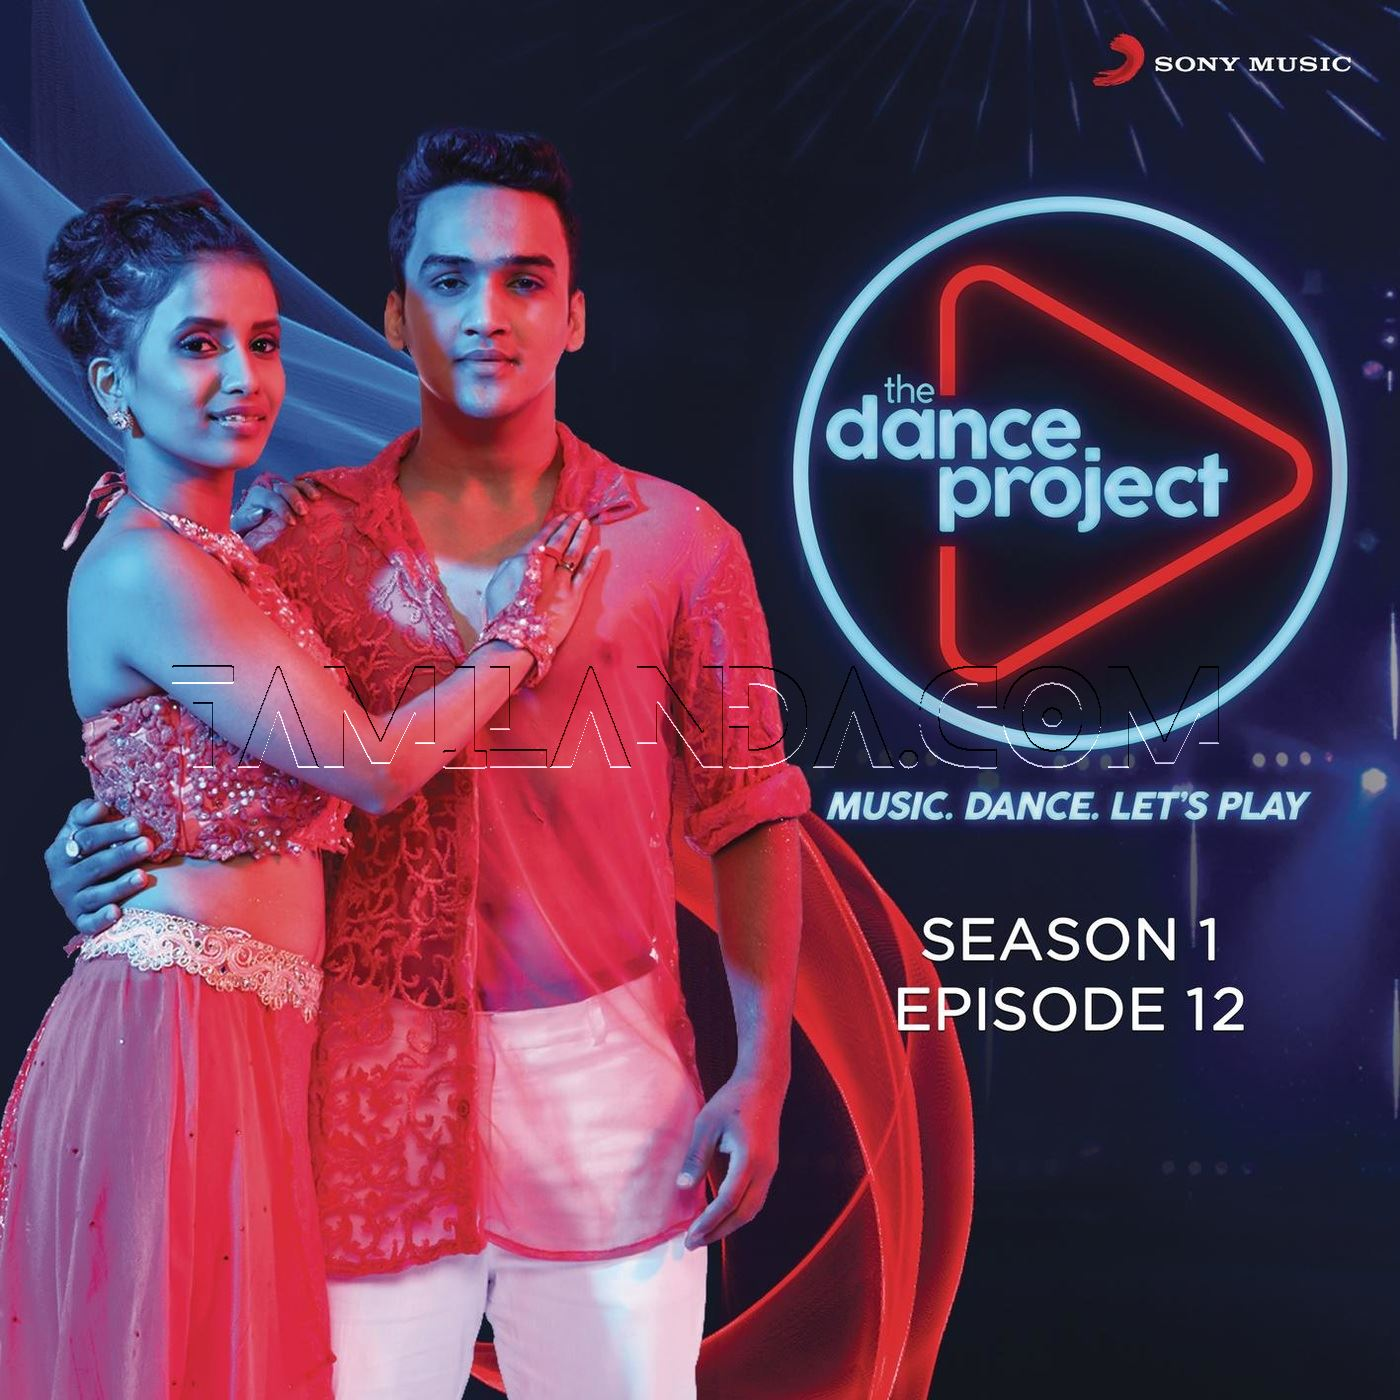 The Dance Project (Season 1 Episode 12) FLAC Songs (2019)